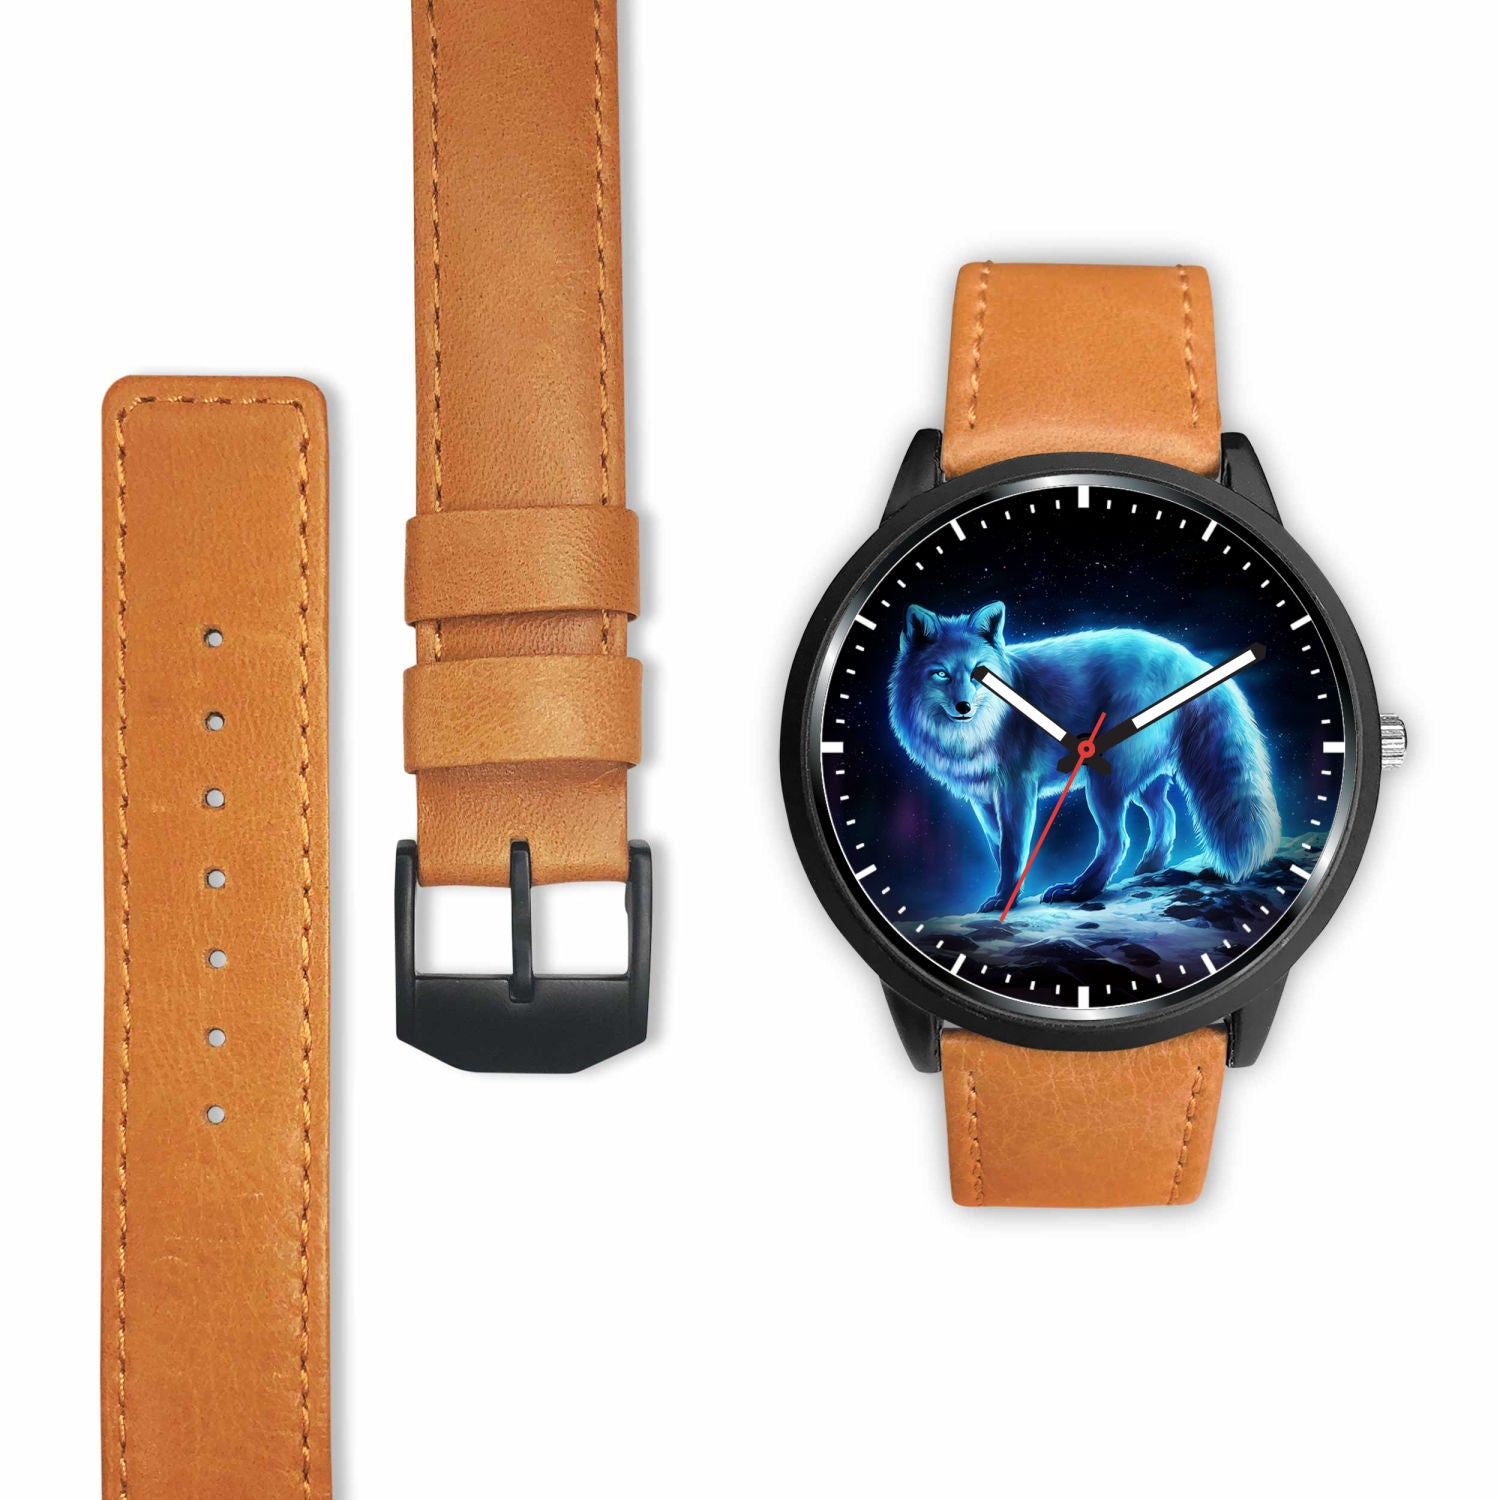 3D Blue Light Wolf Watch - Stainless steel back with leather/ stainless steel band 004 - designfullprint